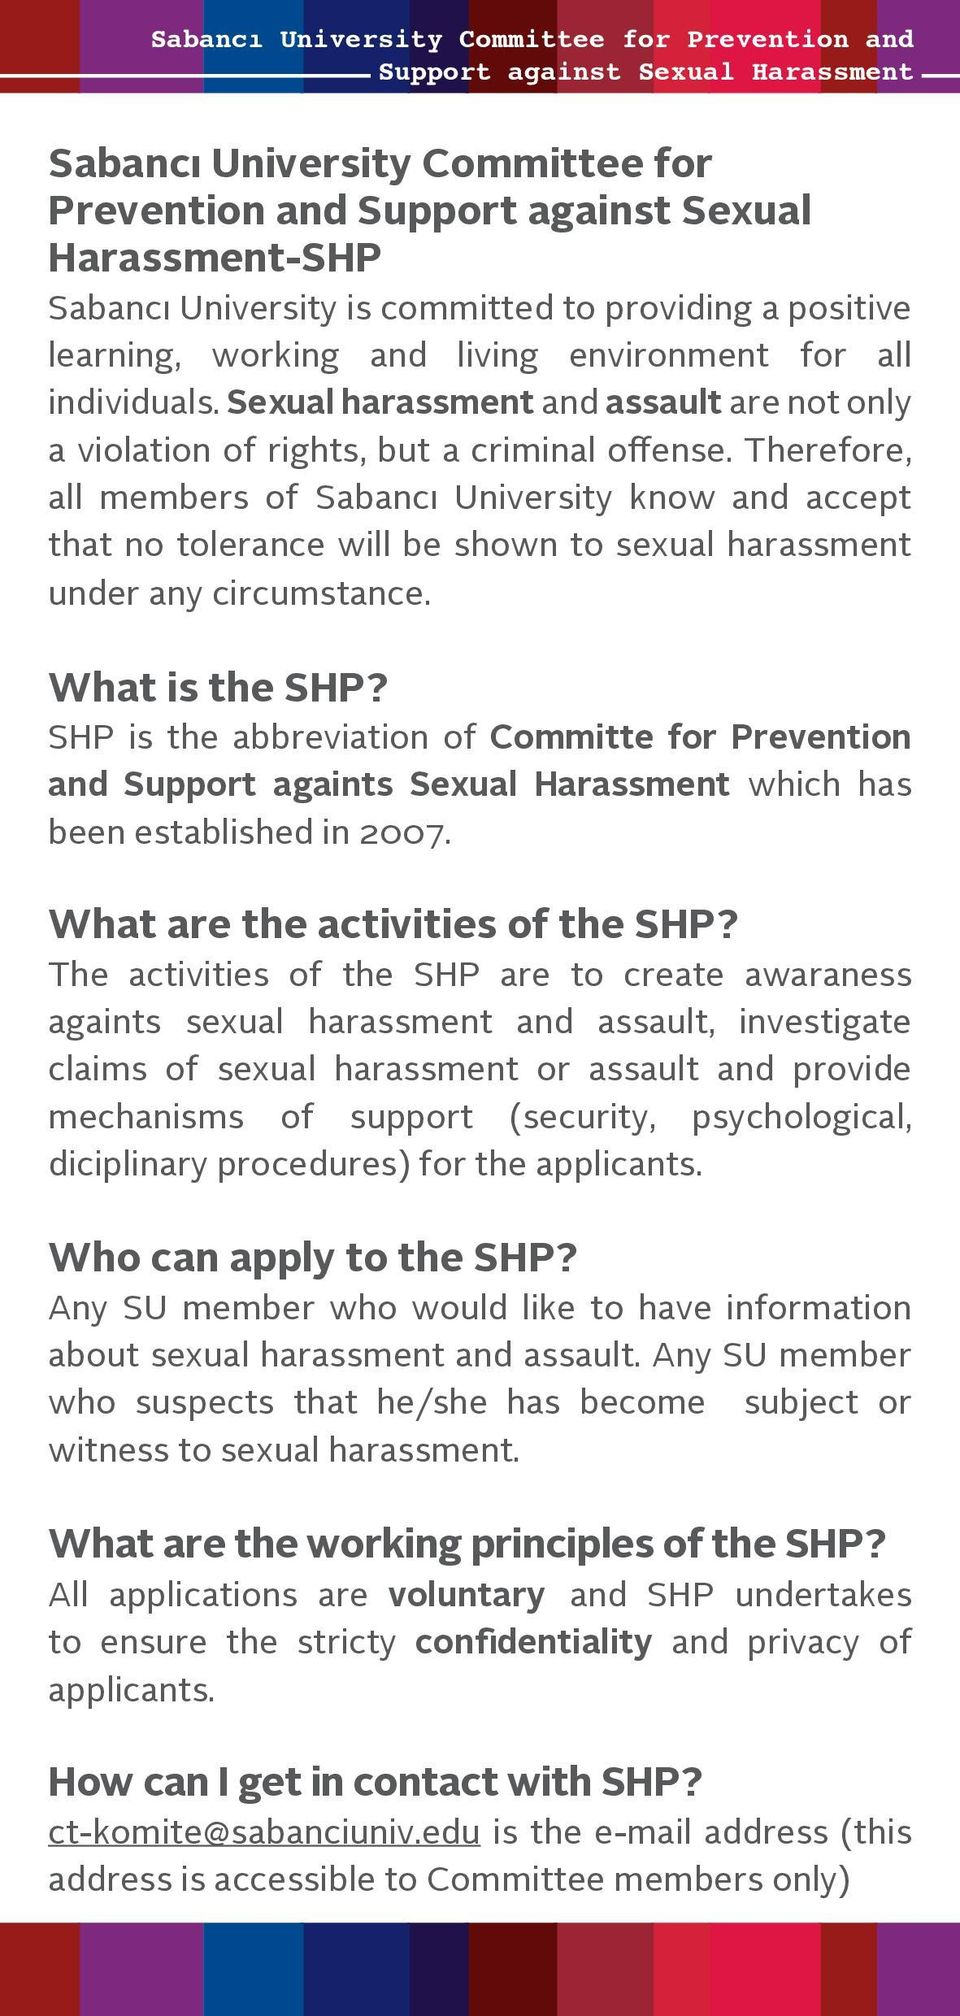 Therefore, all members of Sabancı University know and accept that no tolerance will be shown to sexual harassment under any circumstance. What is the SHP?